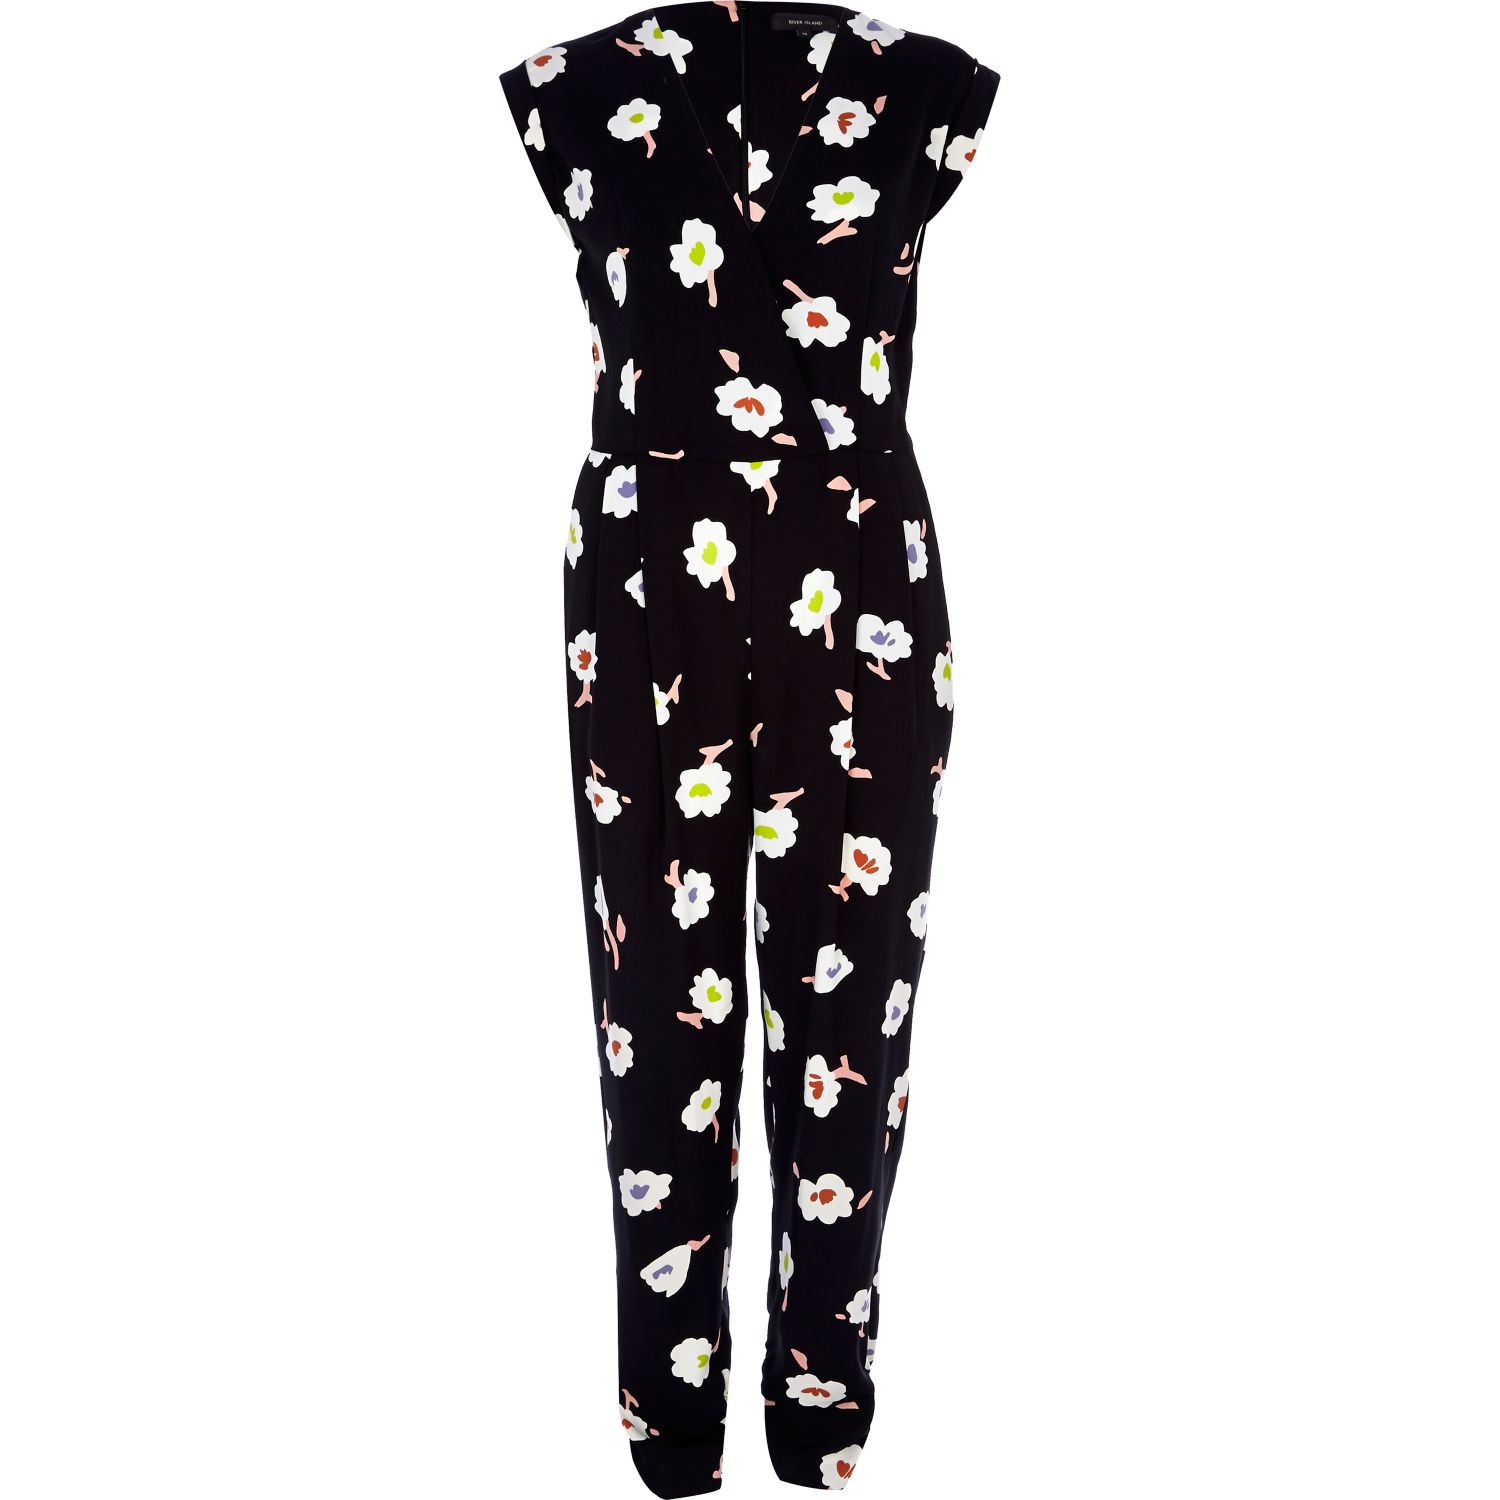 65a4bfc78cb River Island Black Floral Print Jumpsuit in Black - Lyst